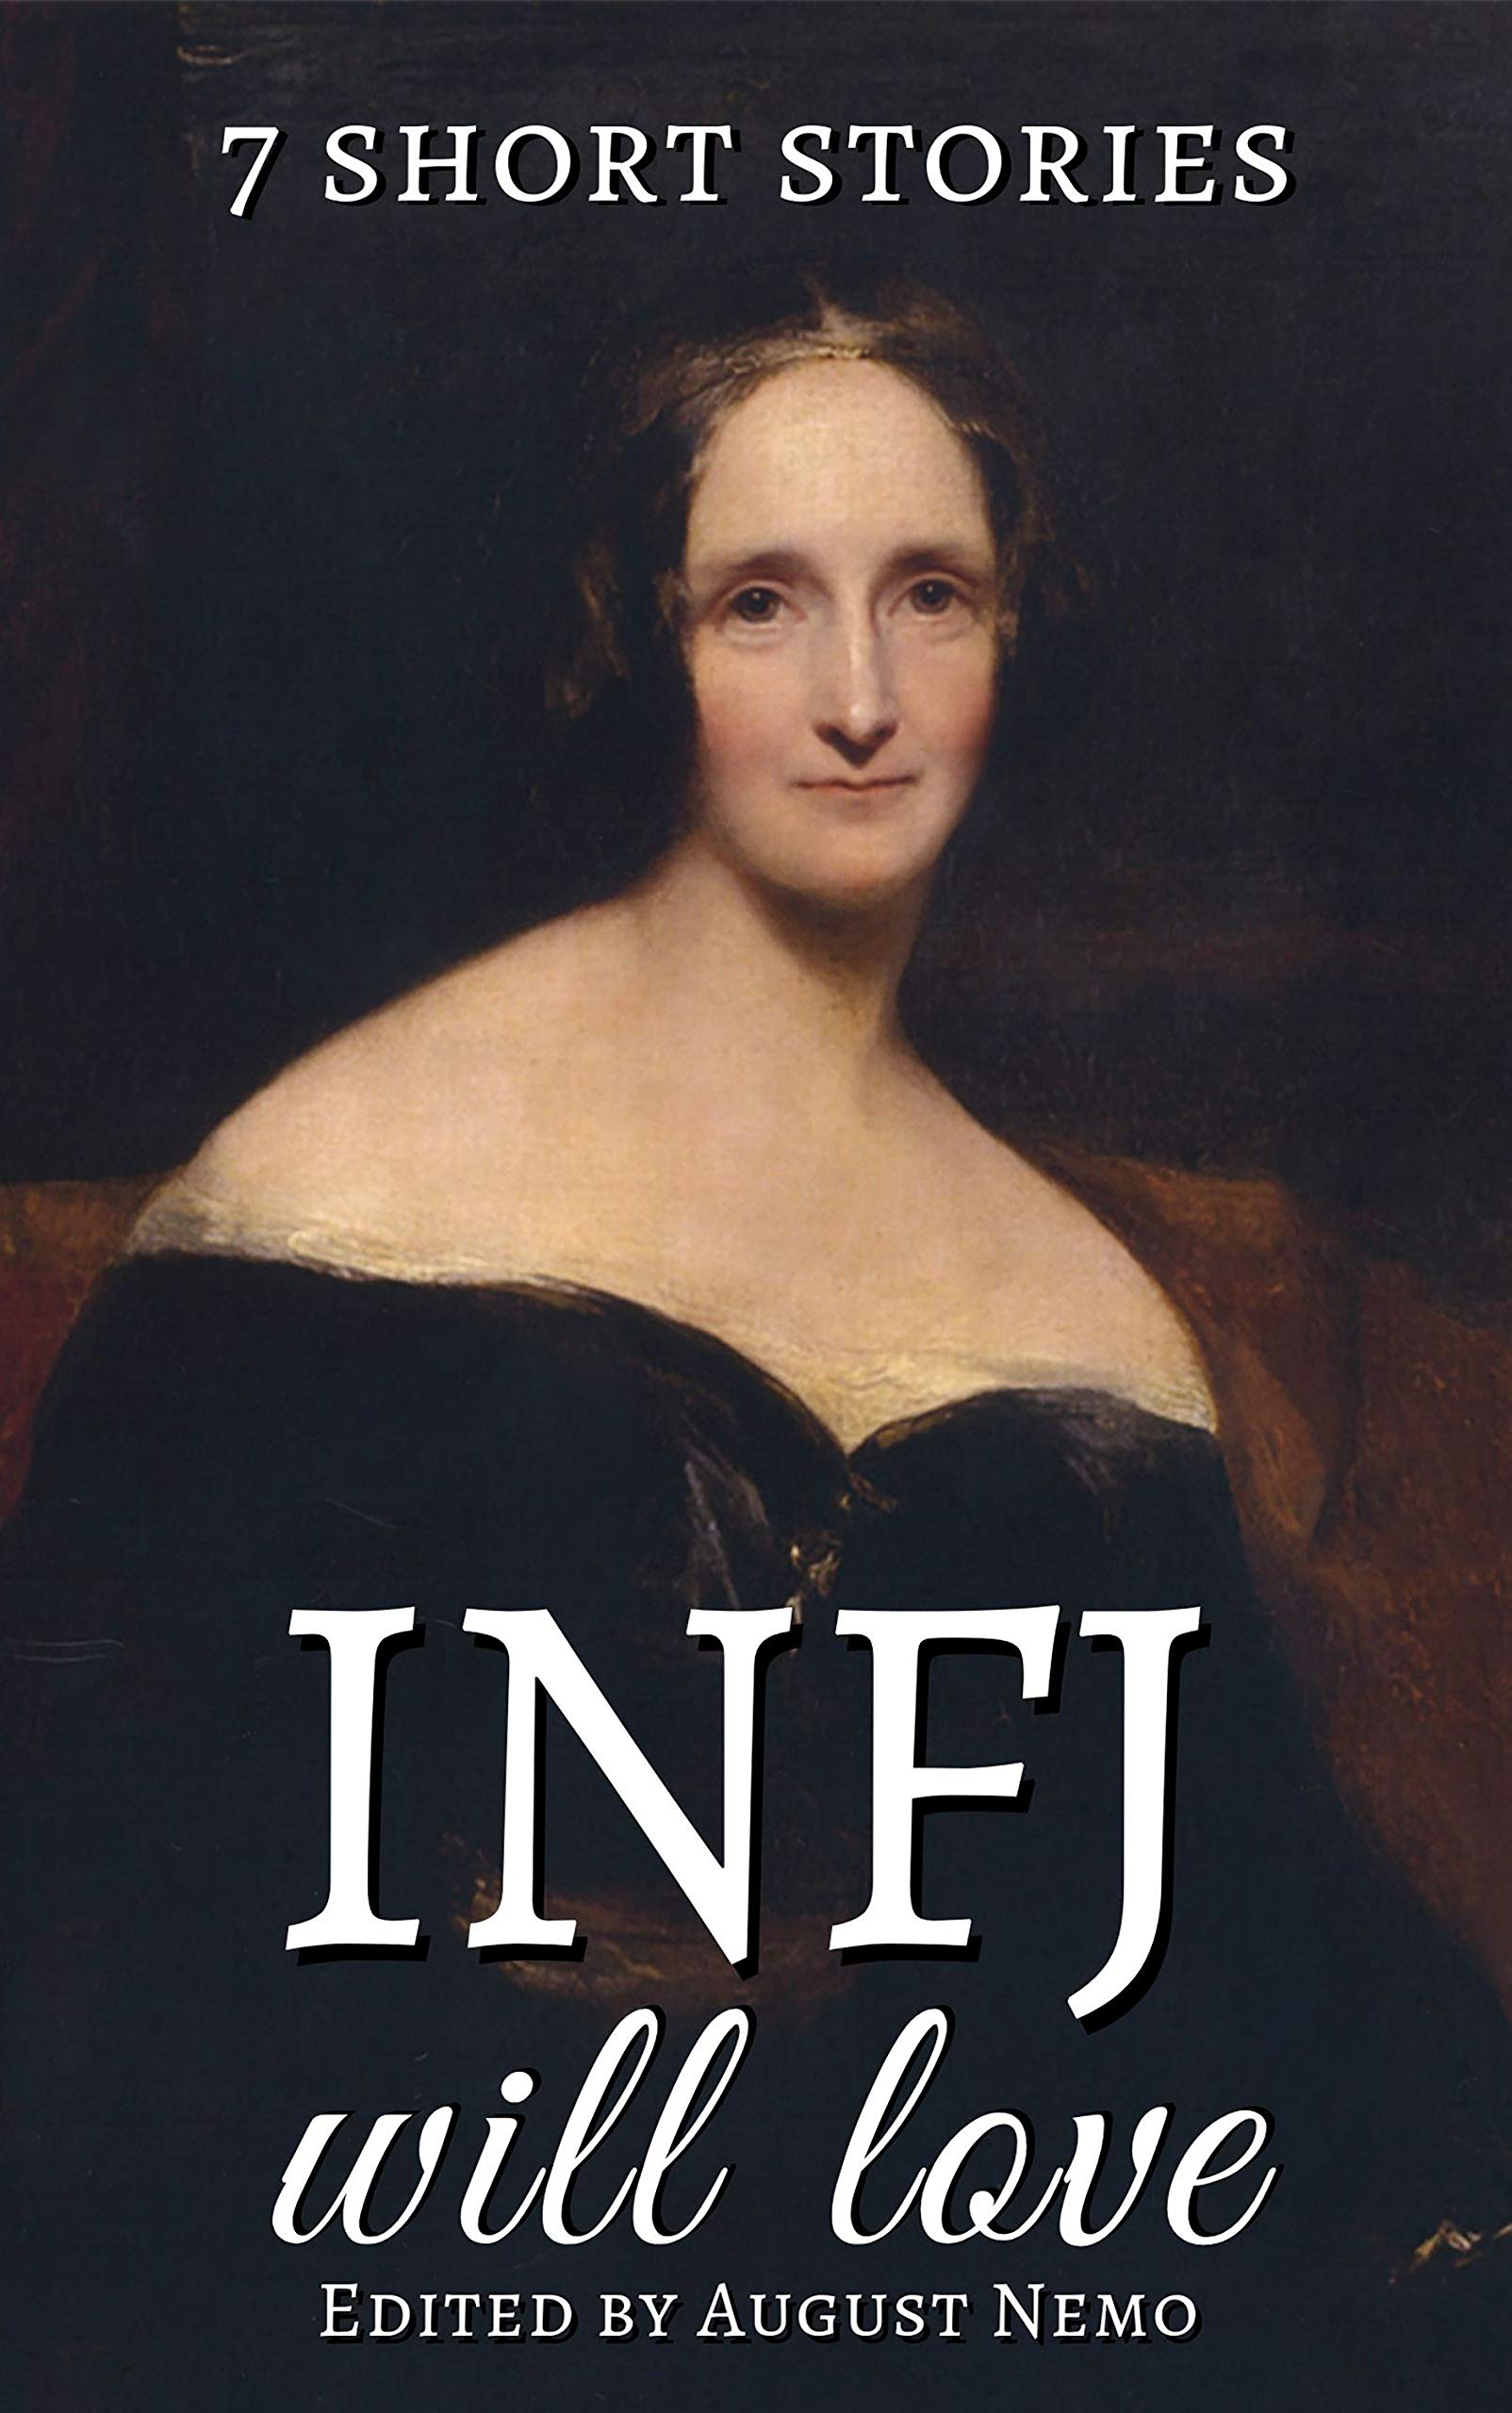 7 short stories that INFJ will love (7 short stories for your Myers-Briggs type Book 9)